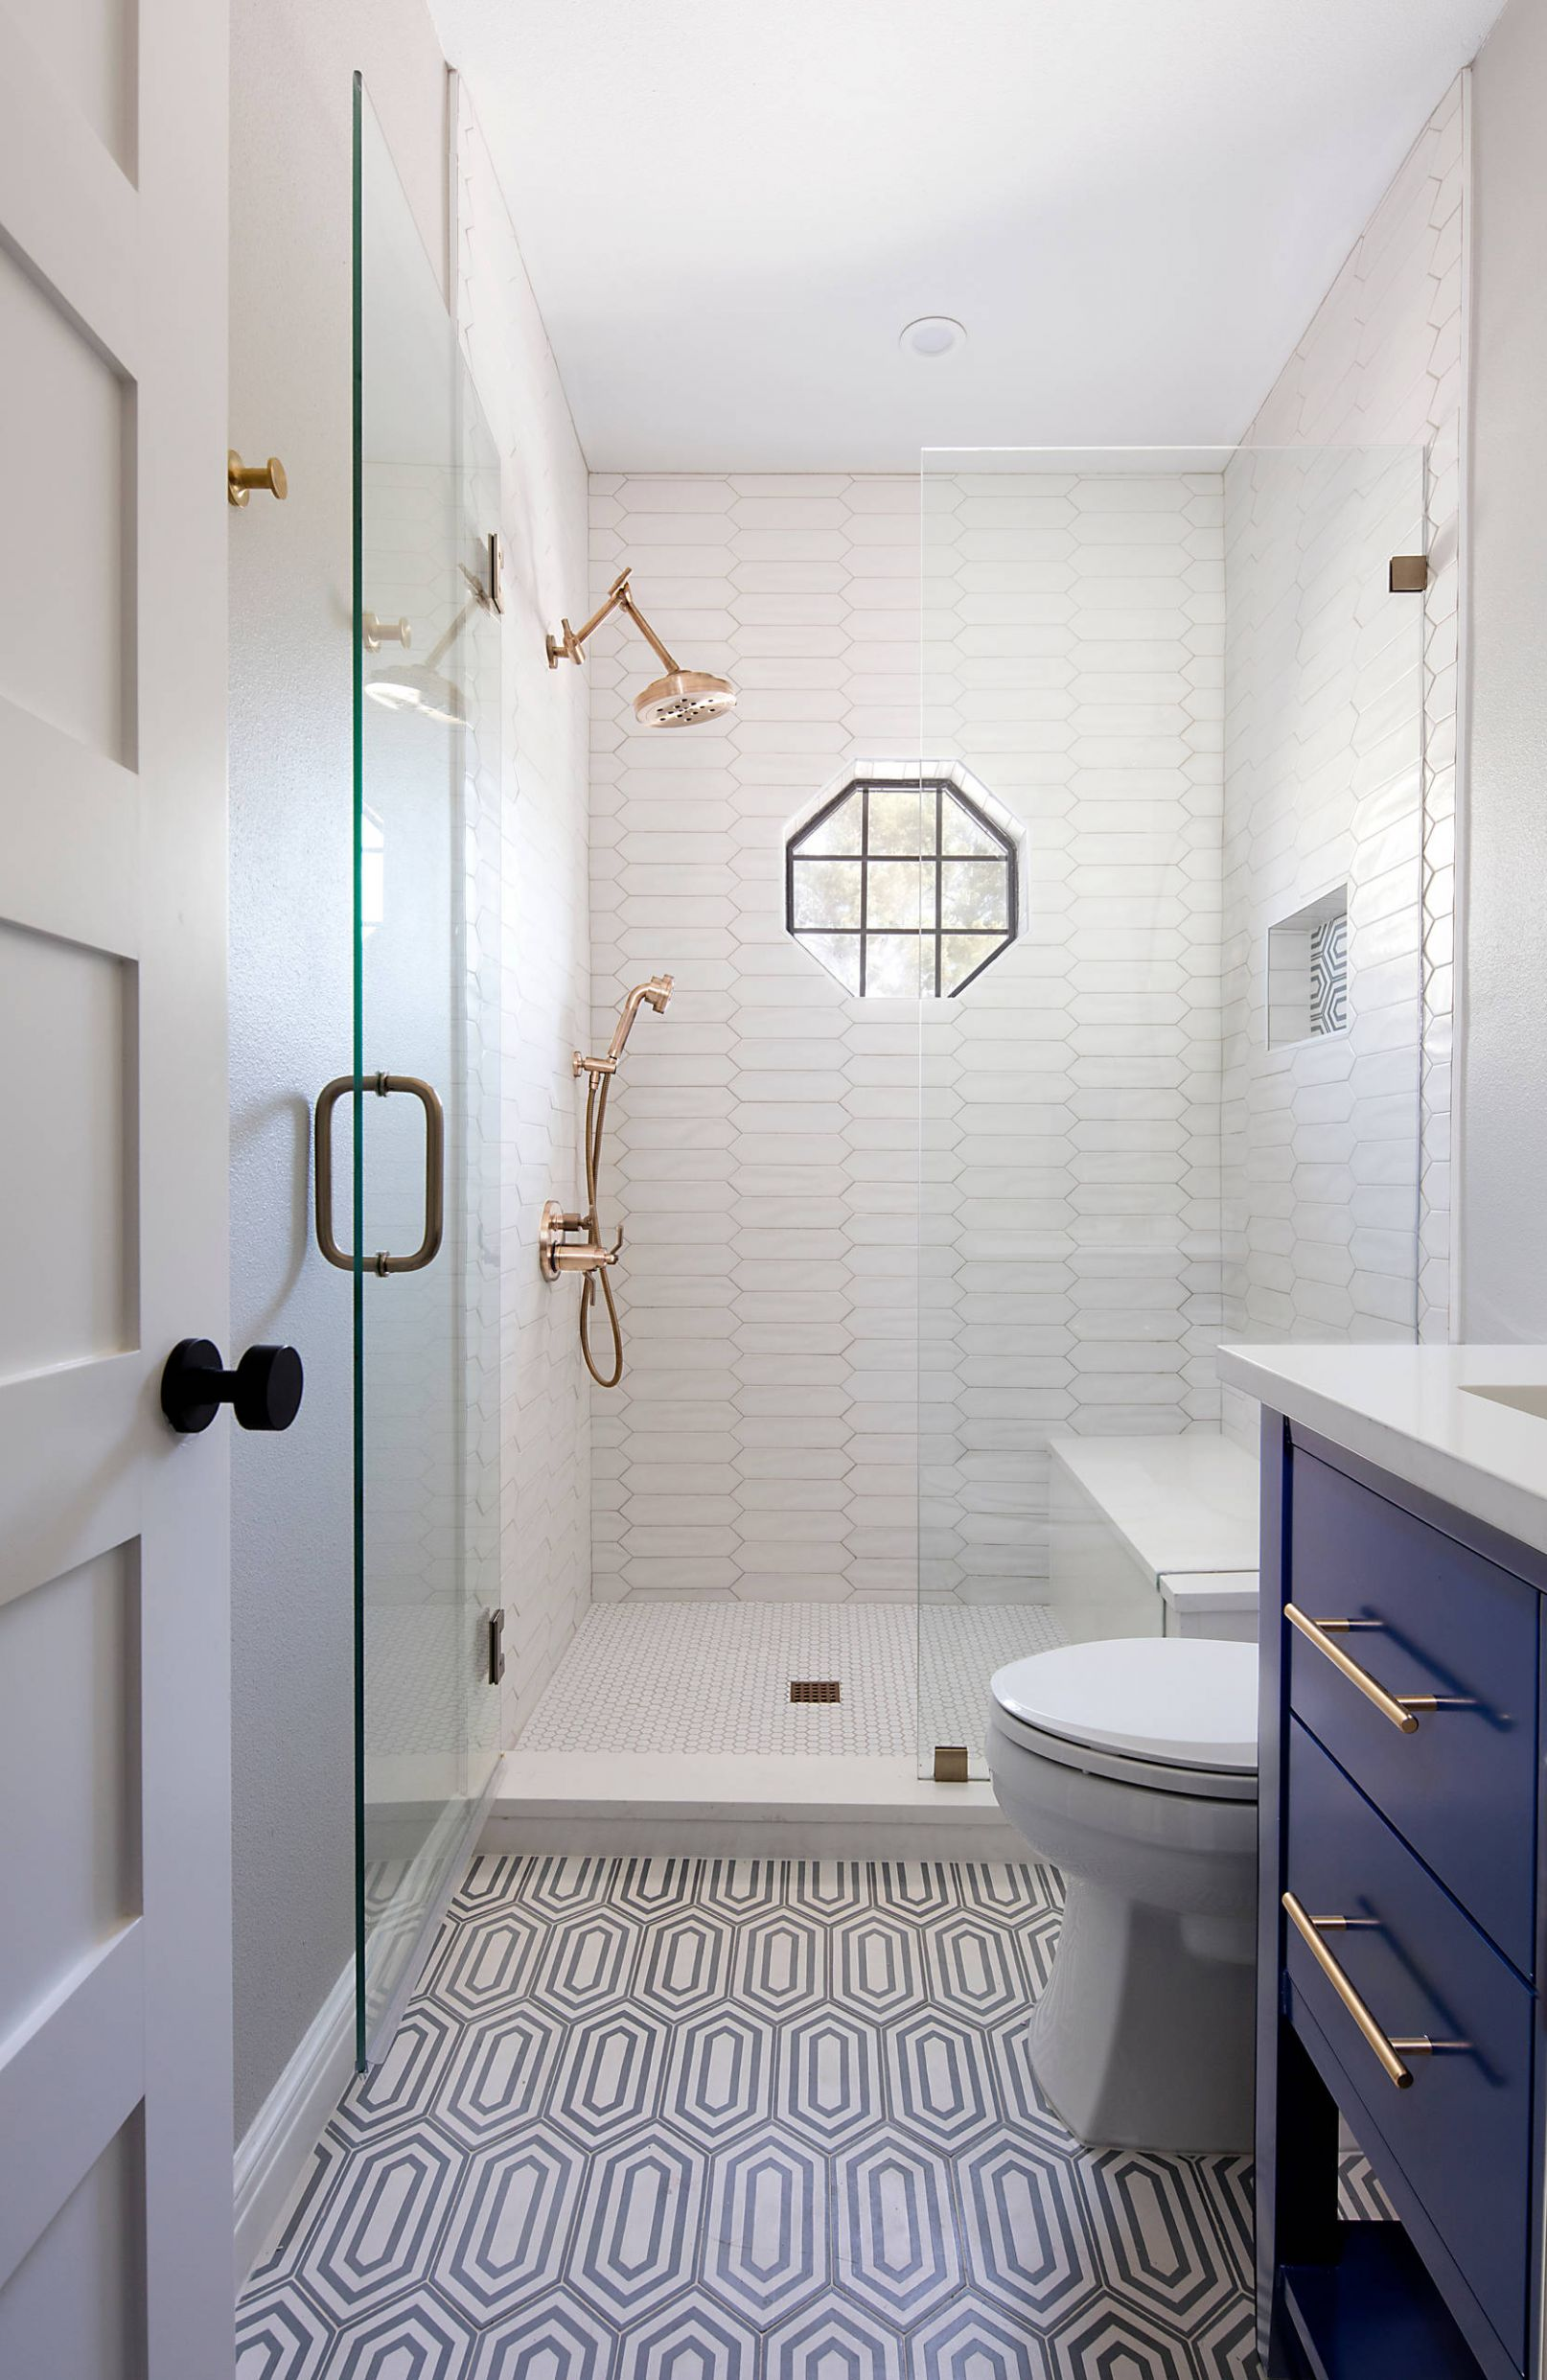 8 Beautiful Small Bathroom Pictures & Ideas | Houzz